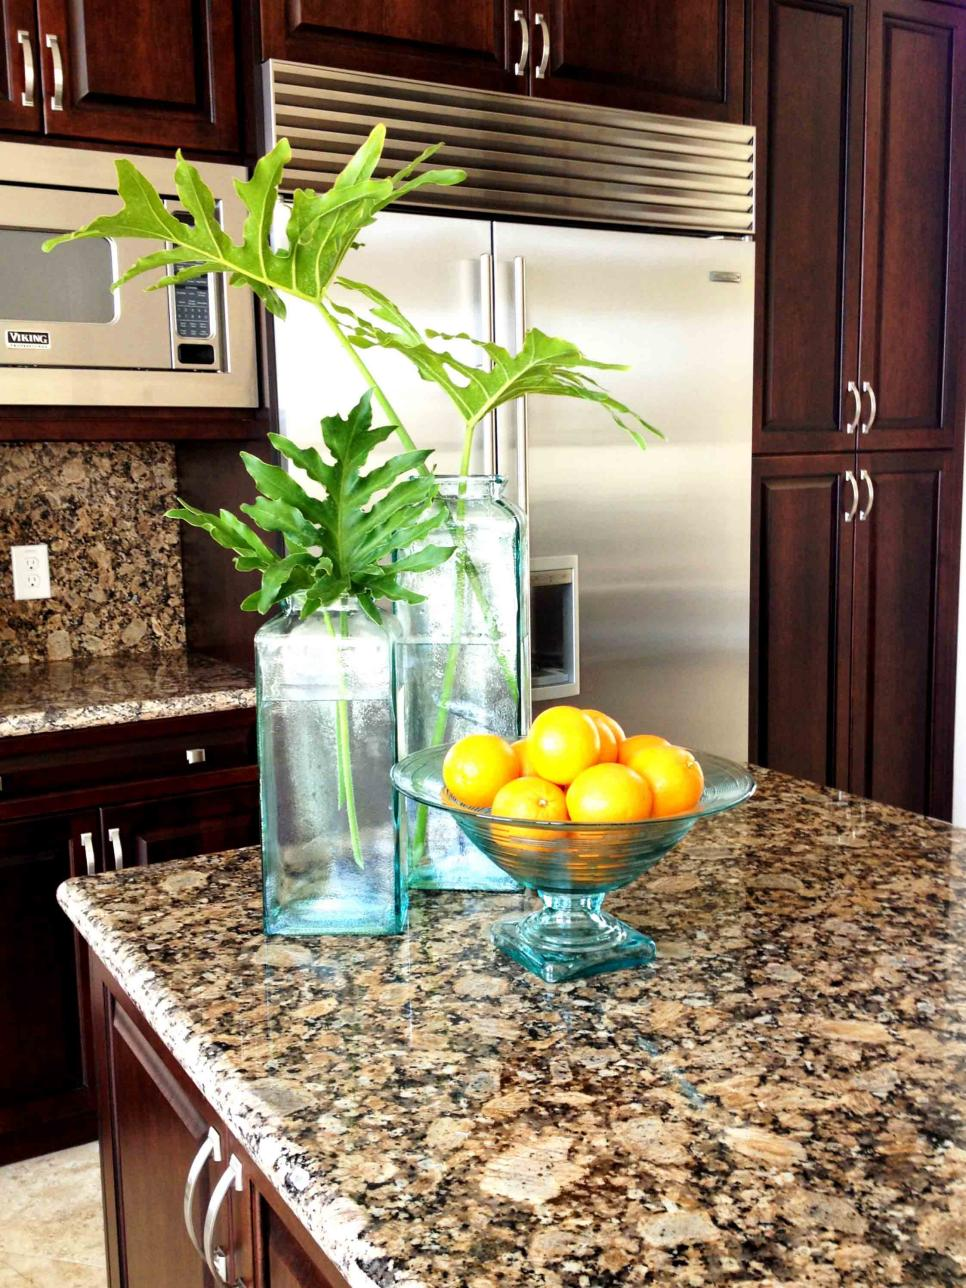 Kitchen Counter Ideas hgtv's best kitchen countertop pictures: color & material ideas | hgtv